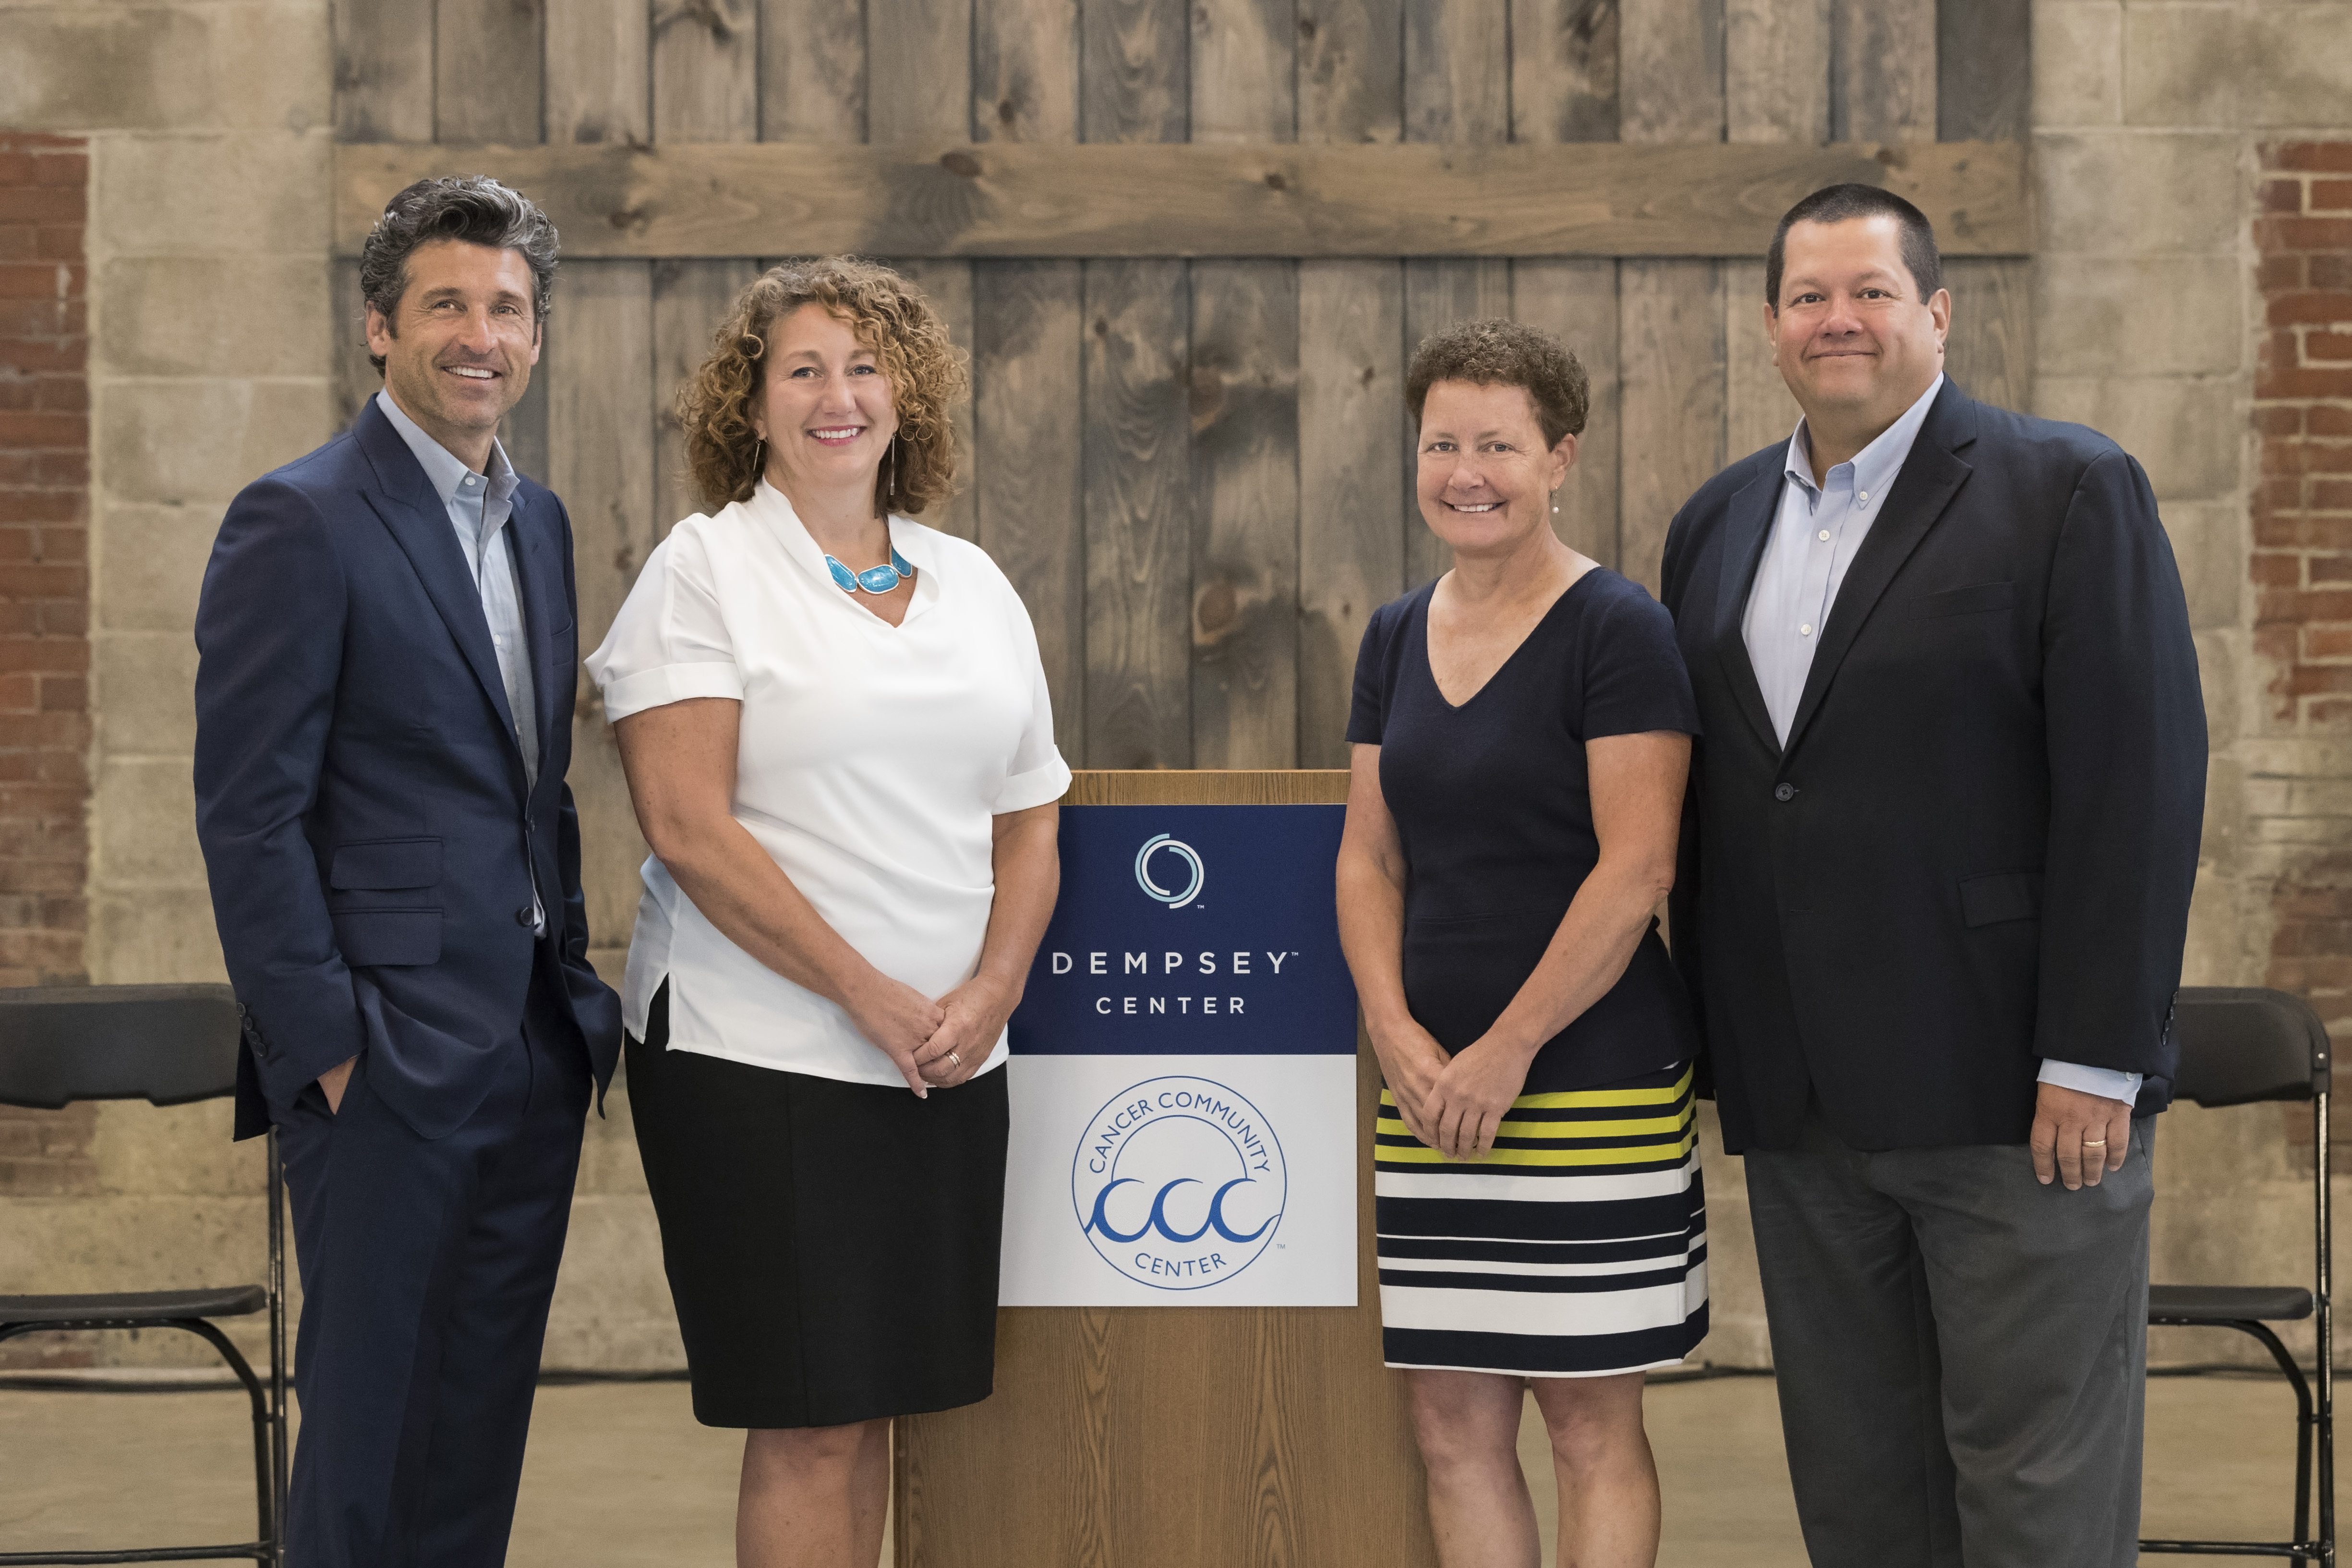 Dempsey Center And Cancer Community Center Merging To Expand Access